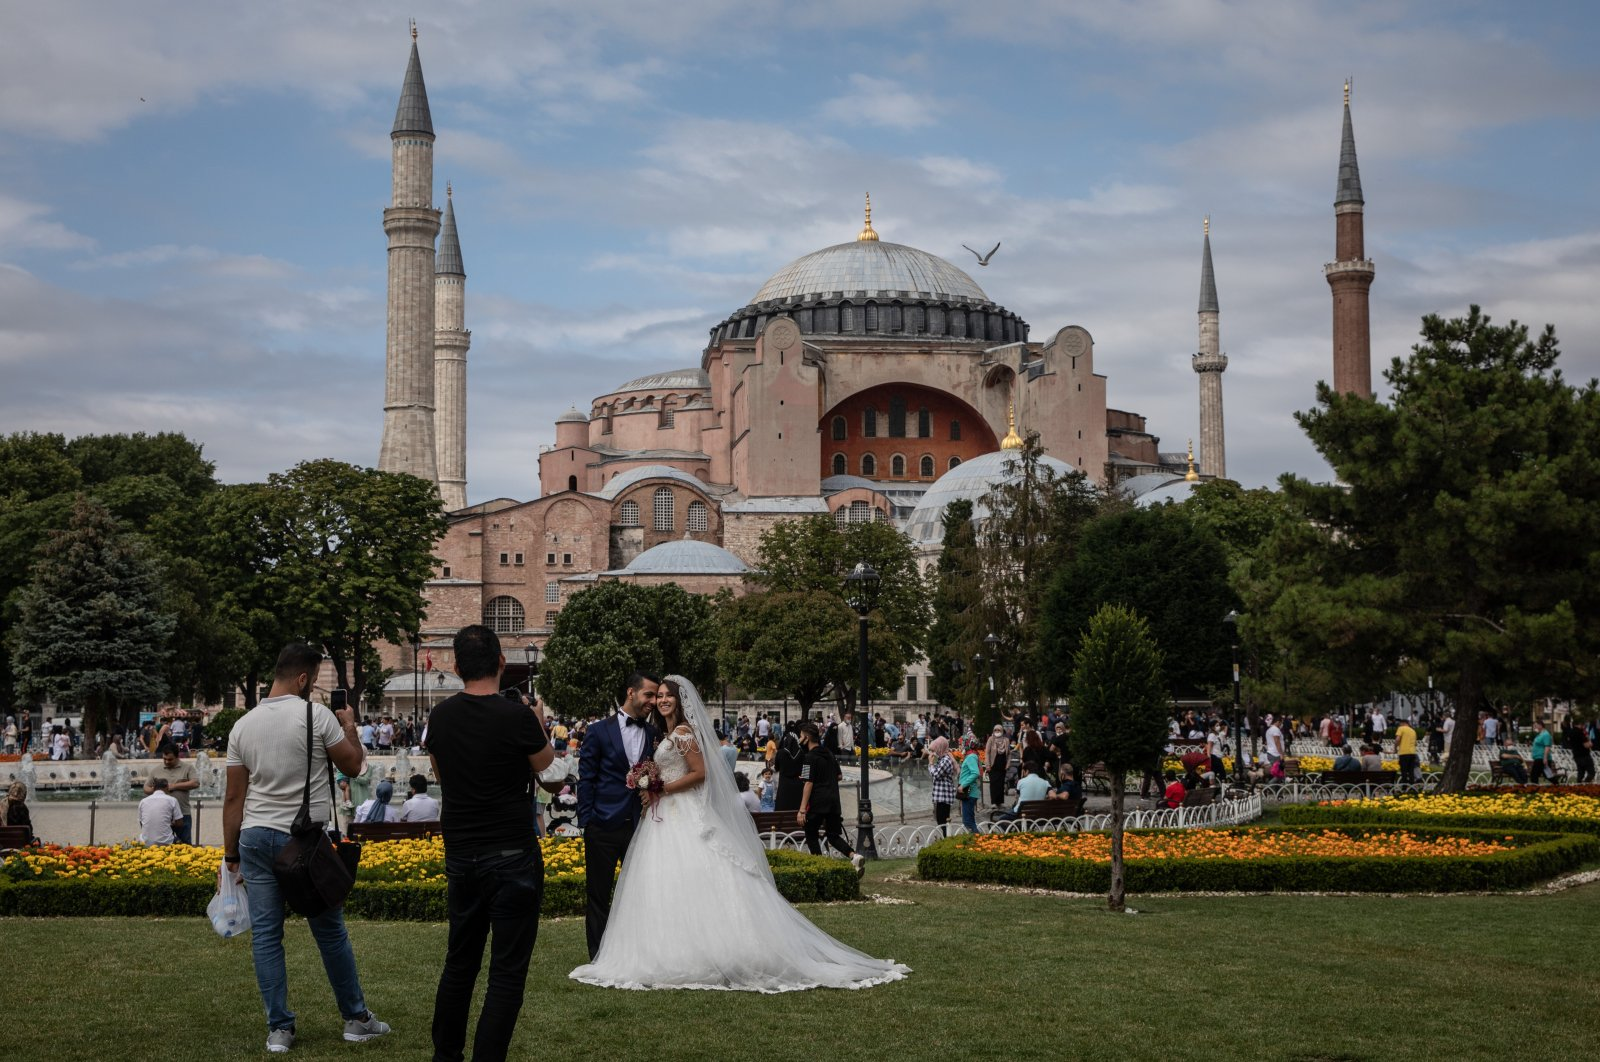 Traditional weddings in Turkey can last for days, especially in rural regions. (Getty Images)